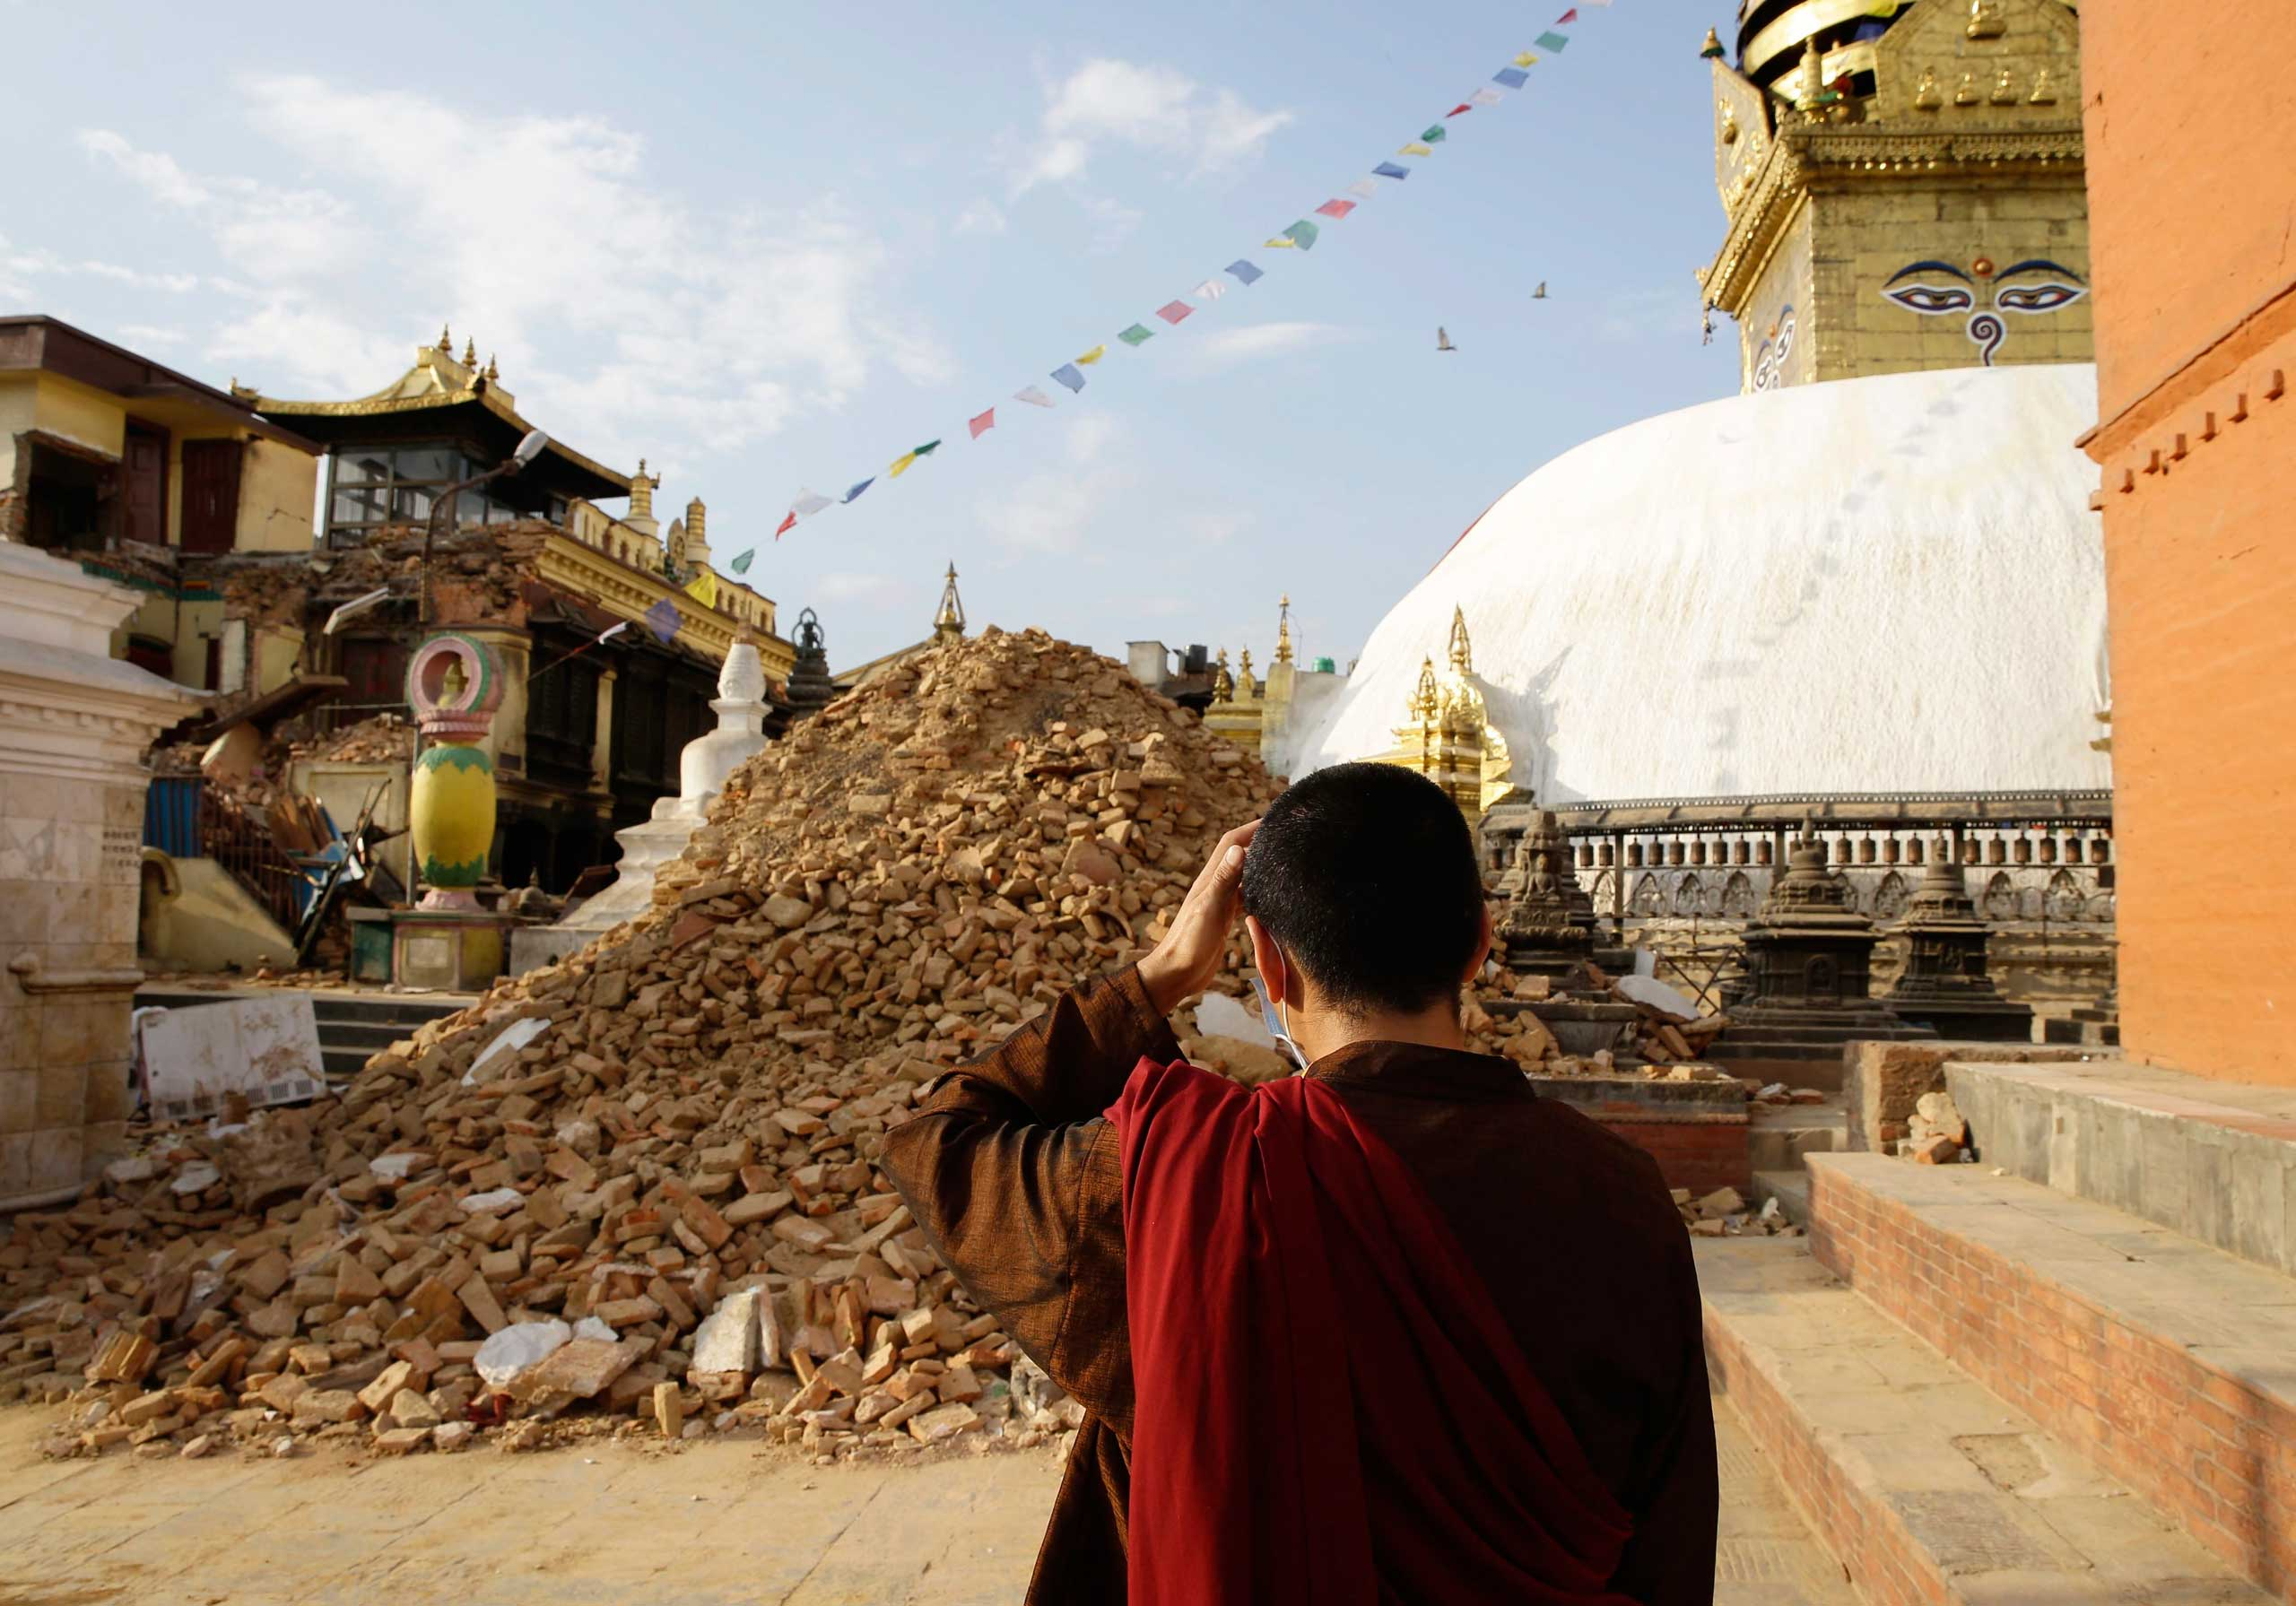 A monk inspects the damage at Nepalese heritage site Syambhunaath Stupa, also known as monkey temple, after a powerful earthquake struck Nepal, in Kathmandu on April 26, 2015.